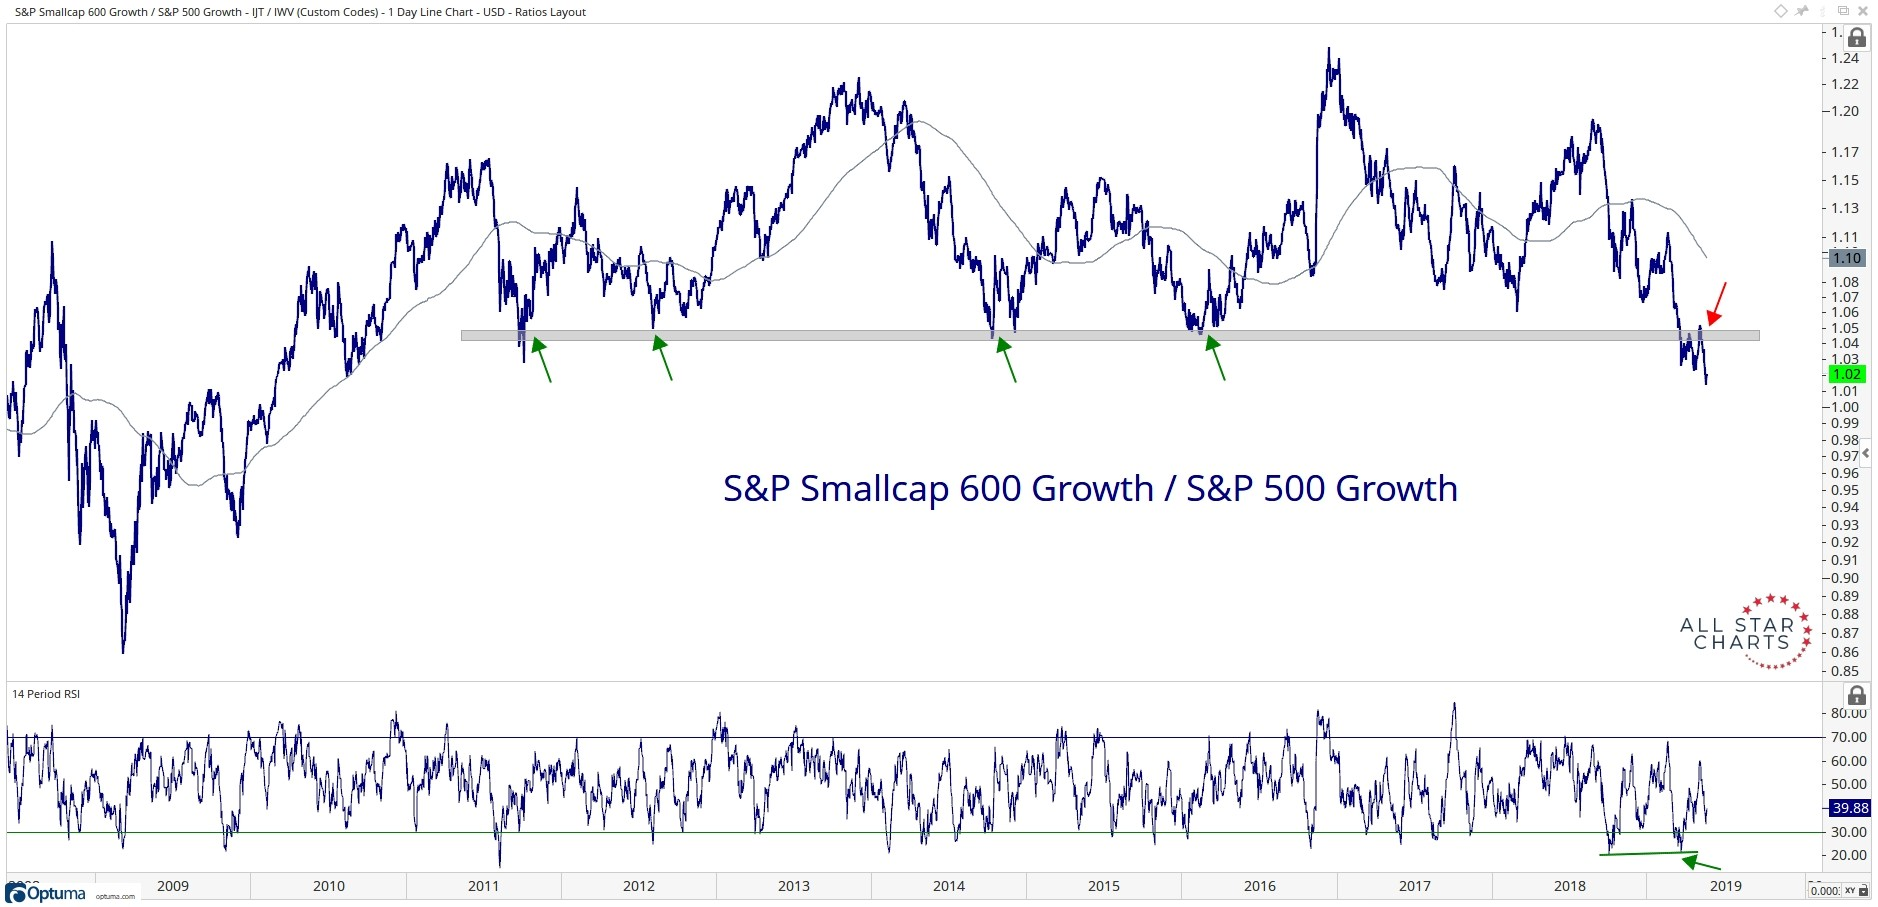 Ten-year history of the performance of the S&P Small Cap 600 Growth Index relative to the S&P 500 Growth Index.